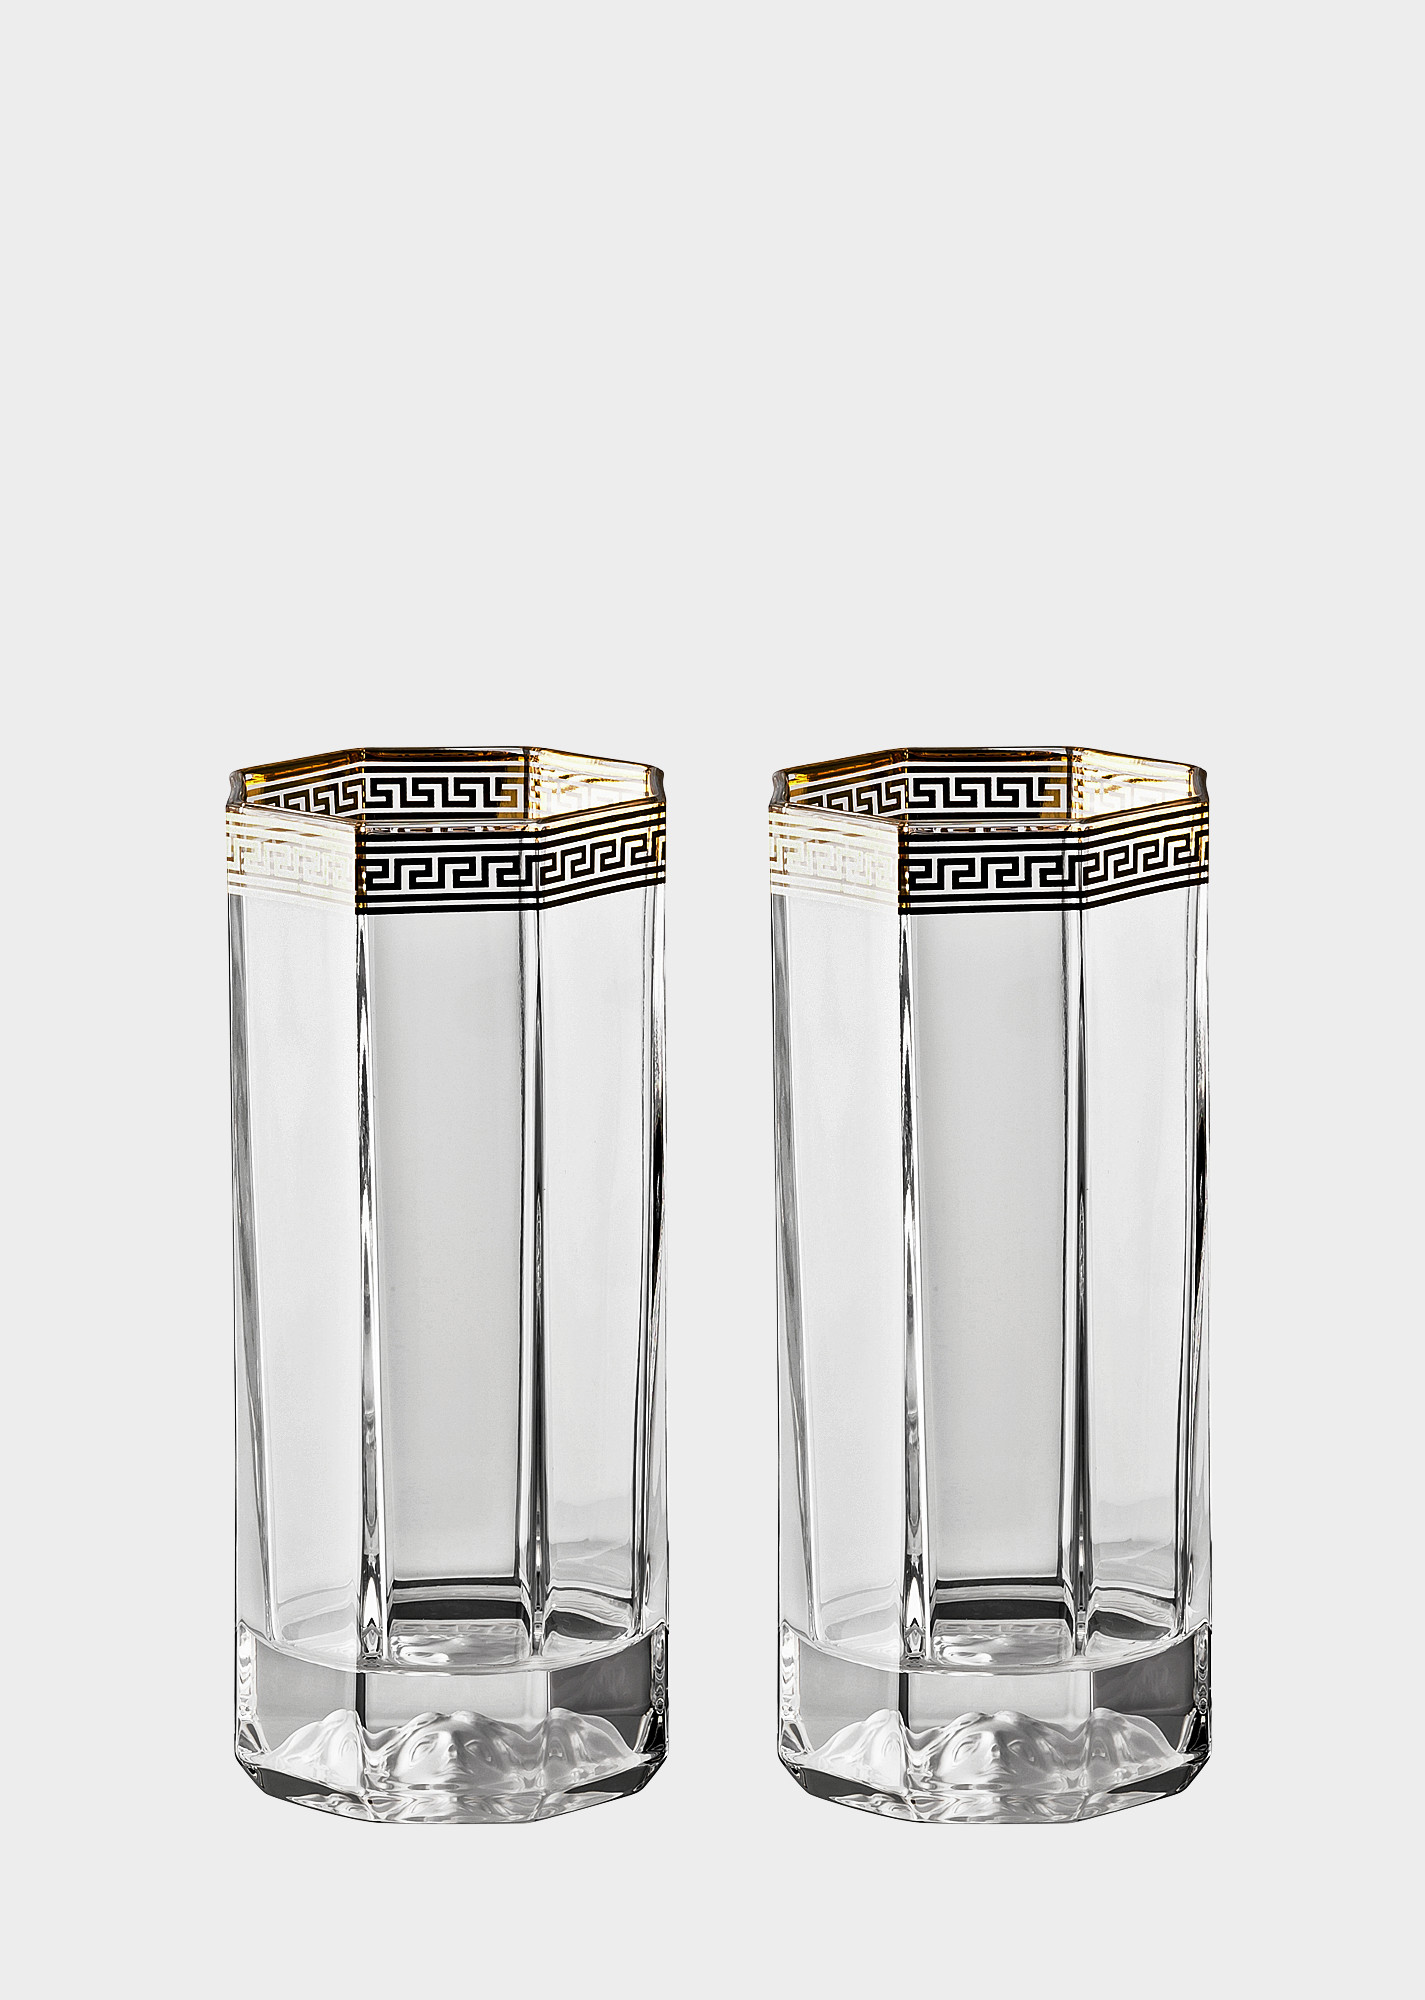 20 x 4 glass cylinder vase of versace home luxury glass crystal official website throughout 90 n48874 n110300 n2066 20 medusadorgp2longdrink glassandcrystal versace online store 4 5